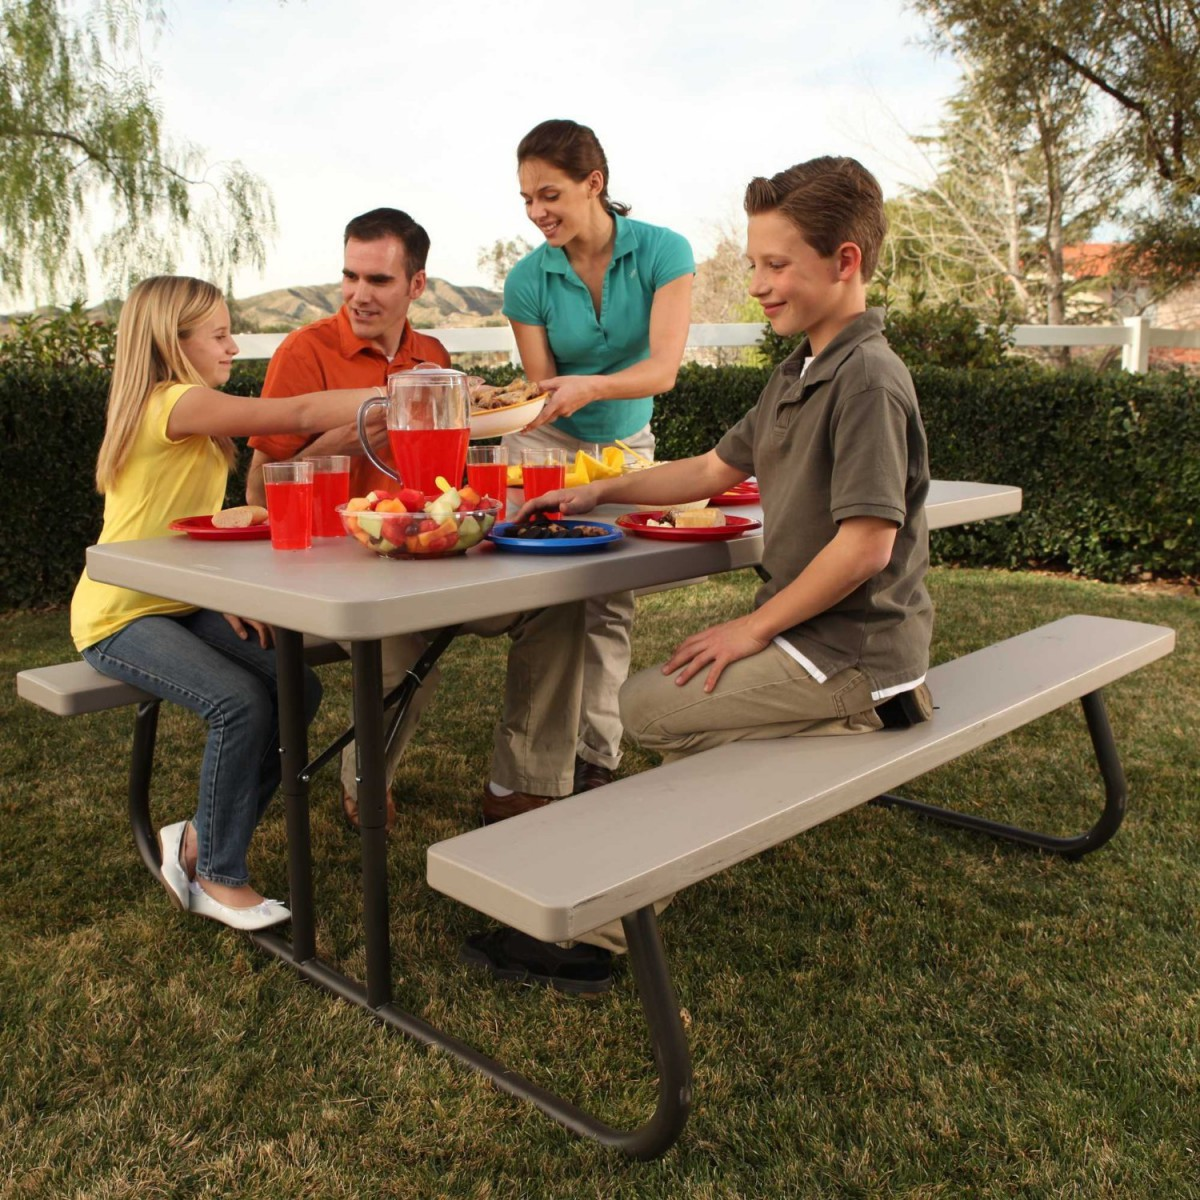 Lifetime 22119 6 Foot Folding Picnic Table Bench in Putty